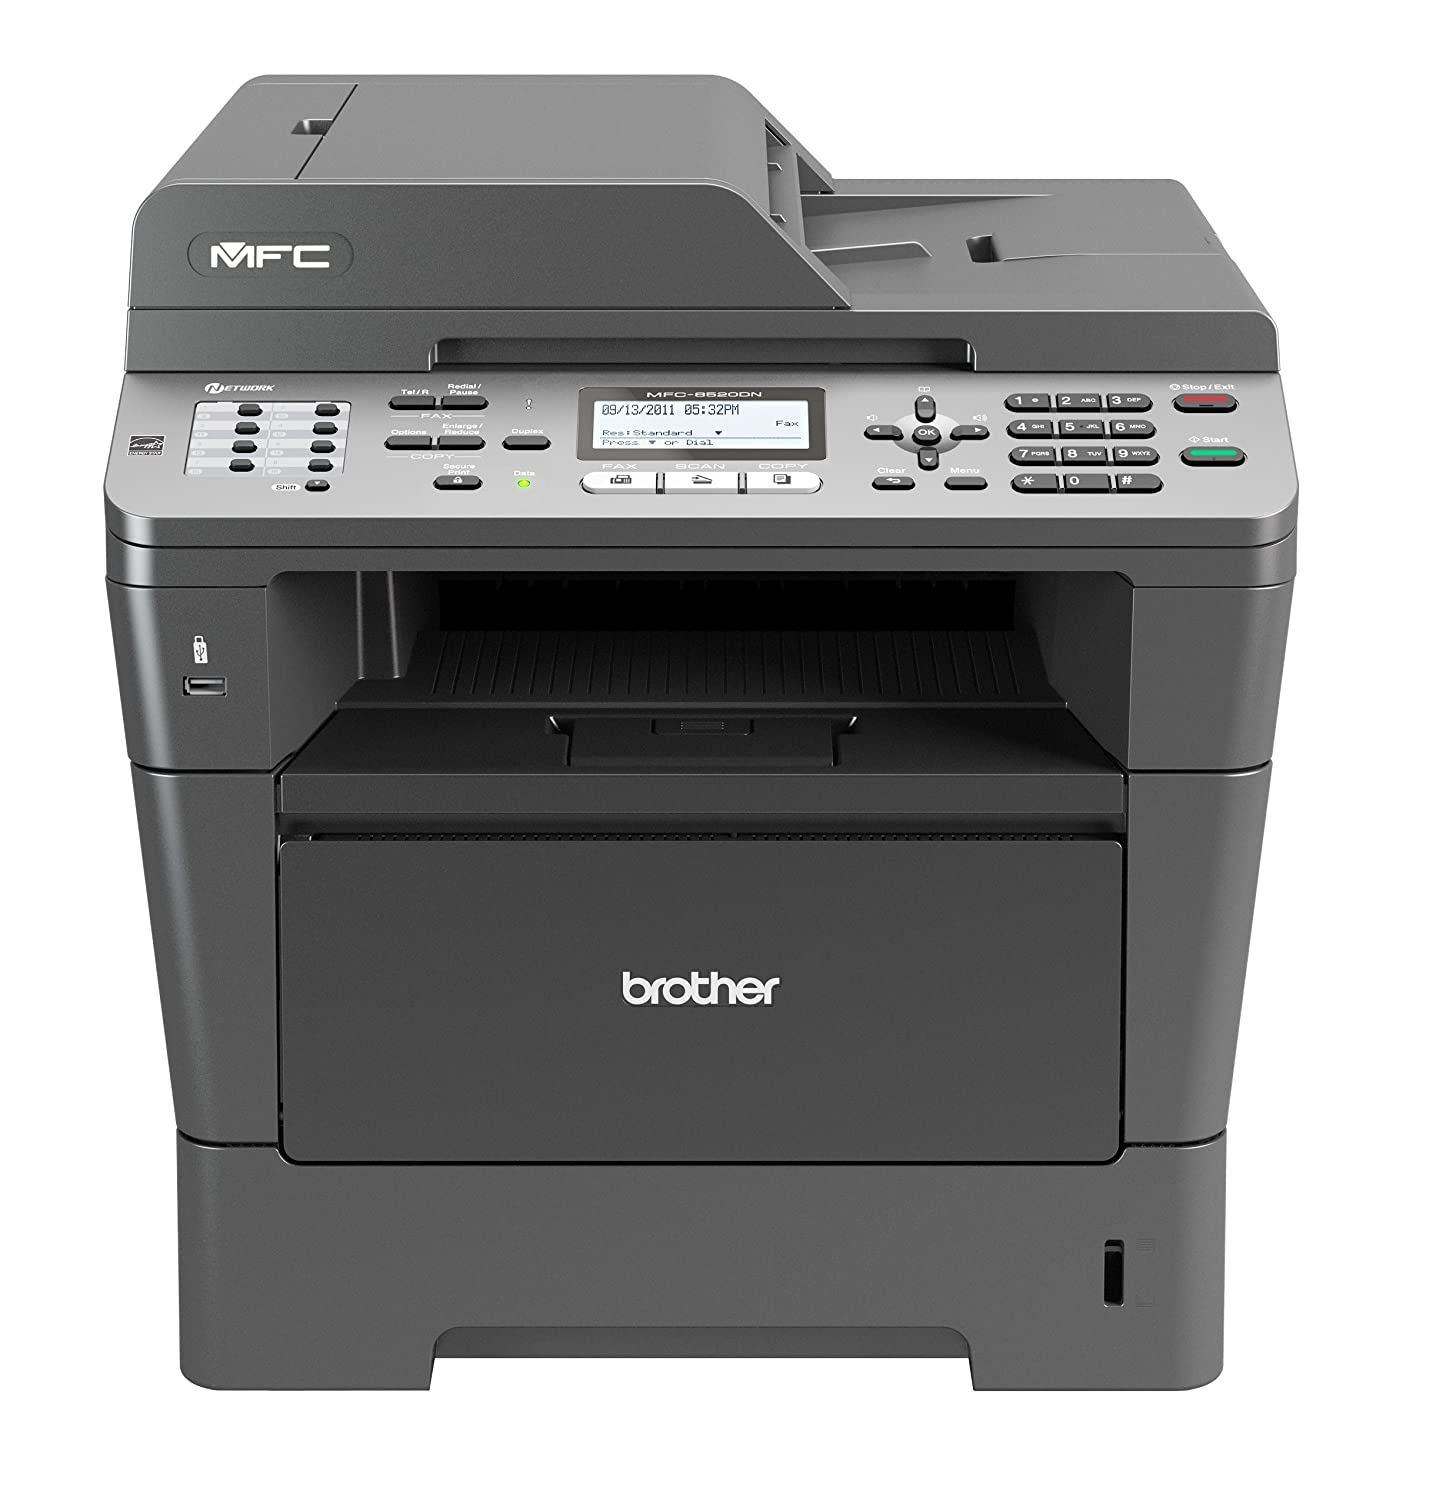 Brother MFC-8510DN Universal Printer Windows 8 Driver Download